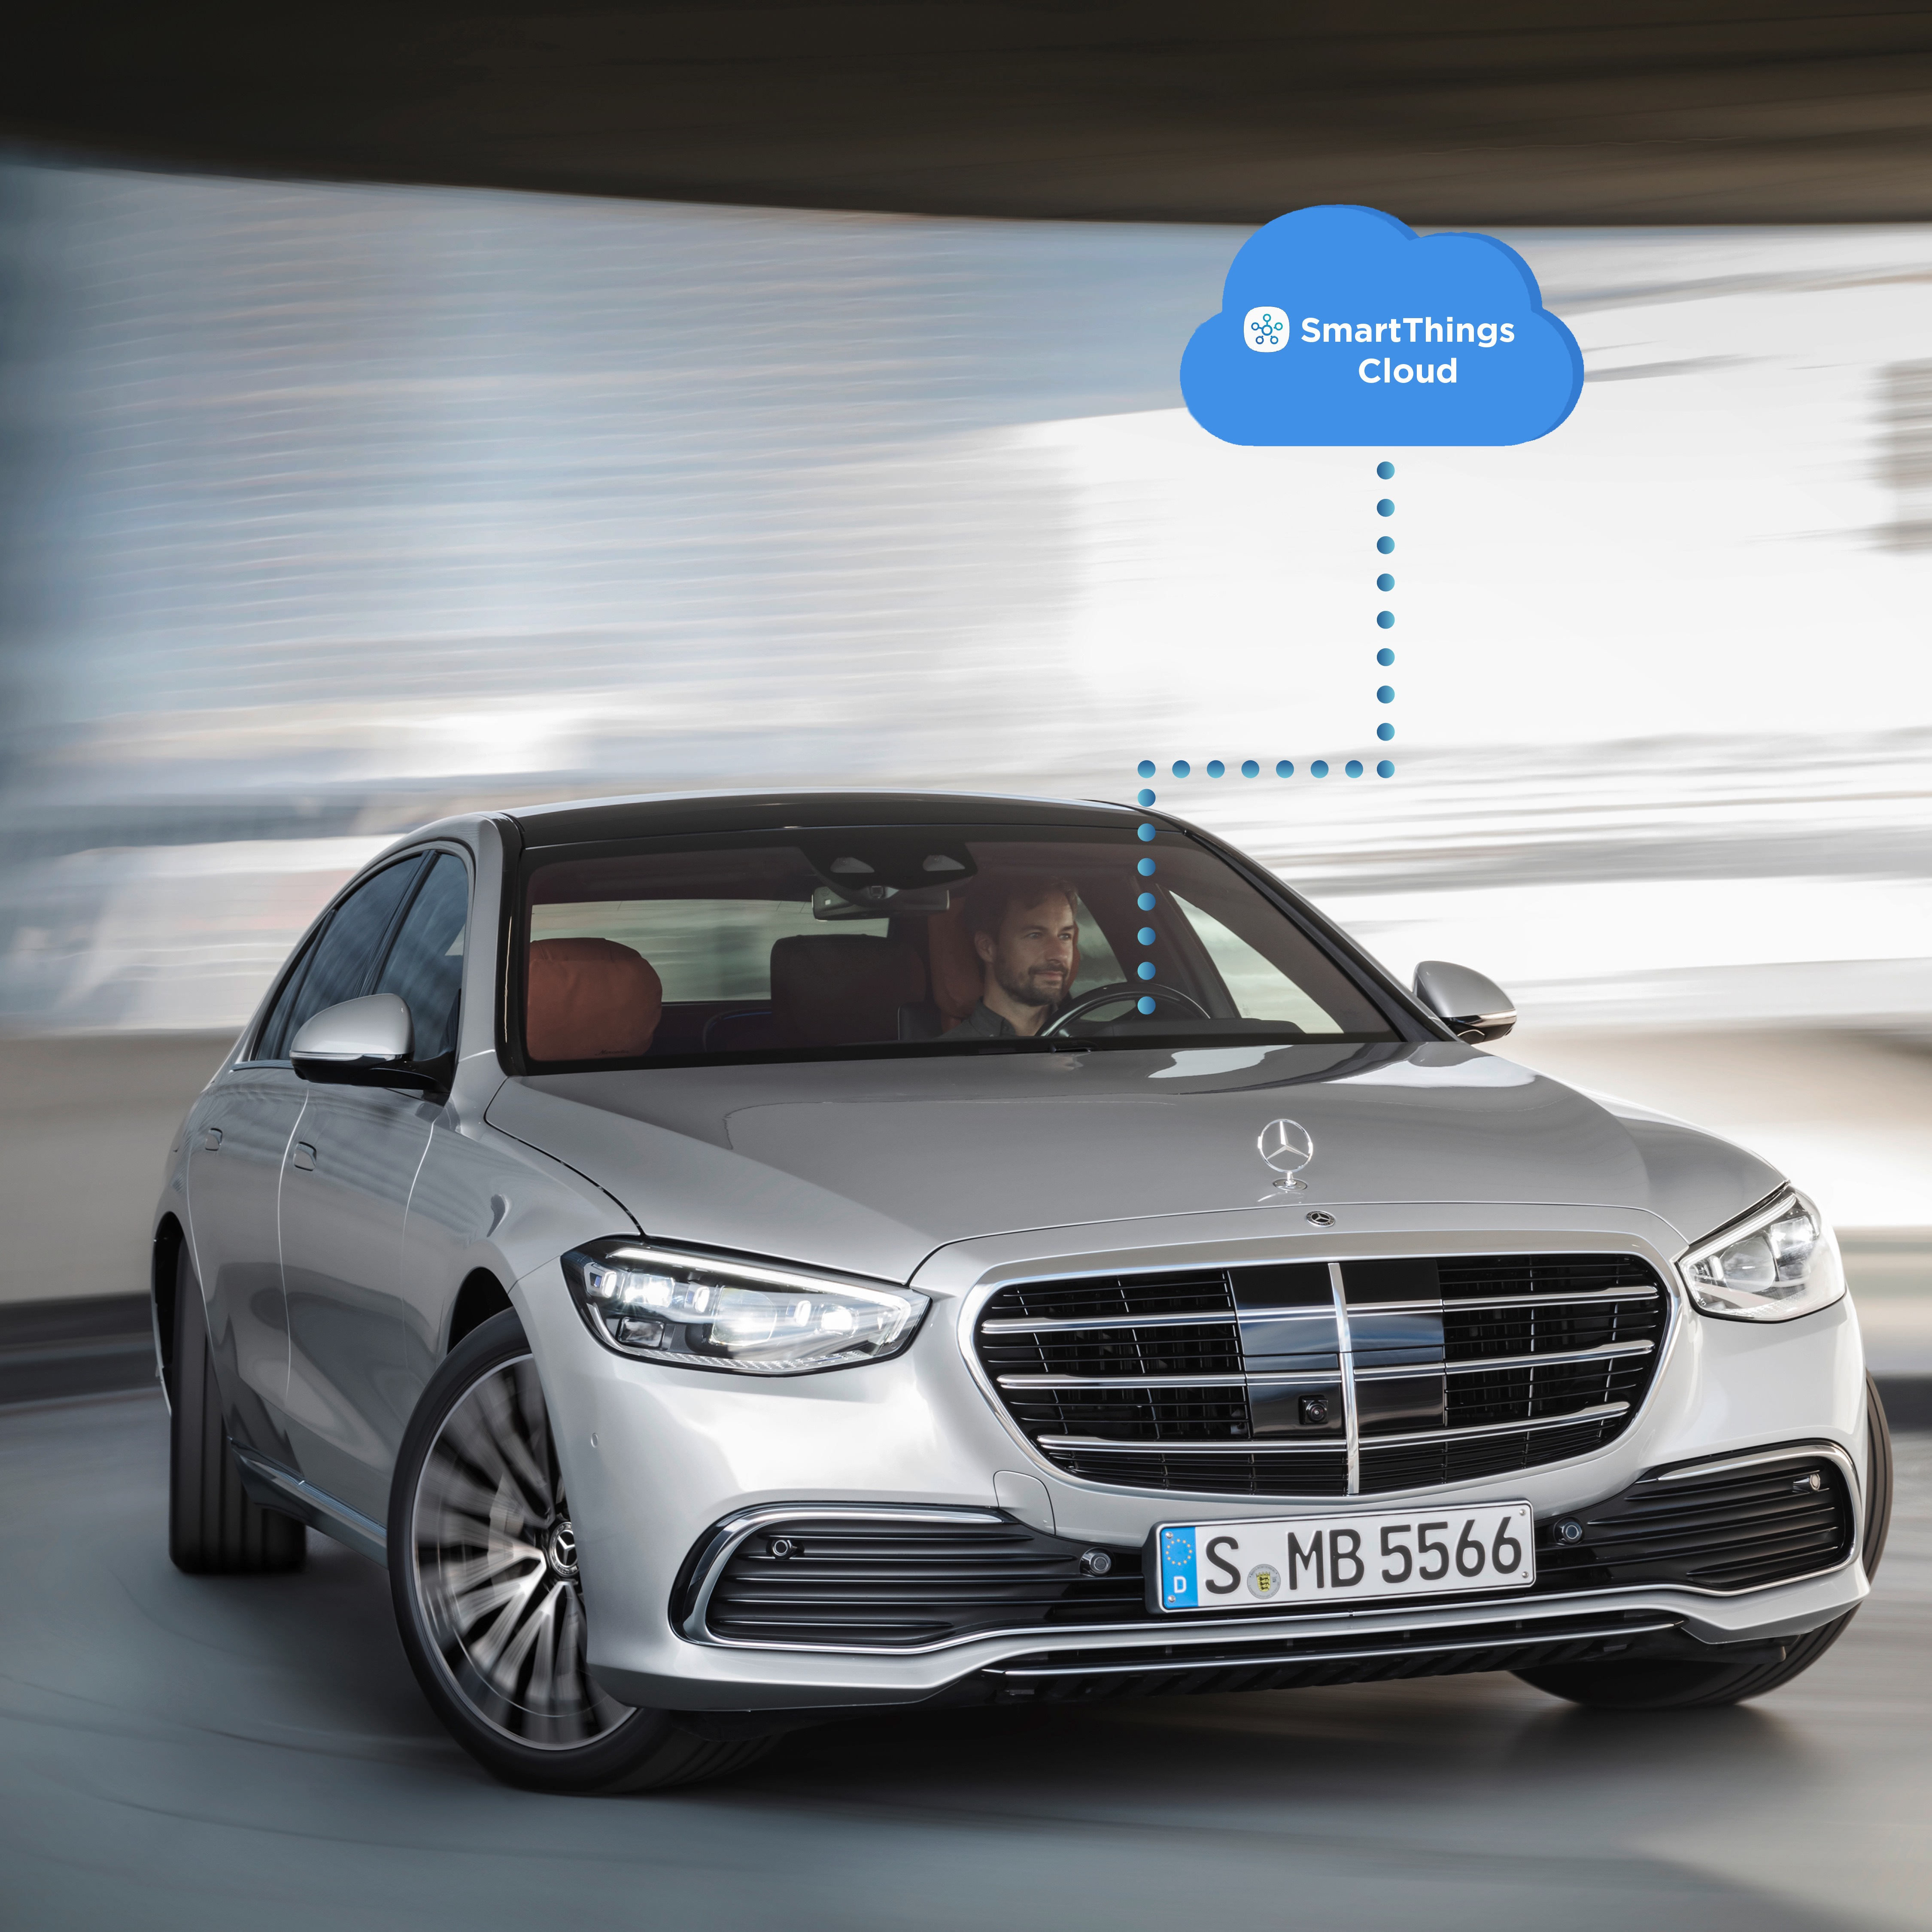 Mercedes-Benz and smarthings partnership announcement